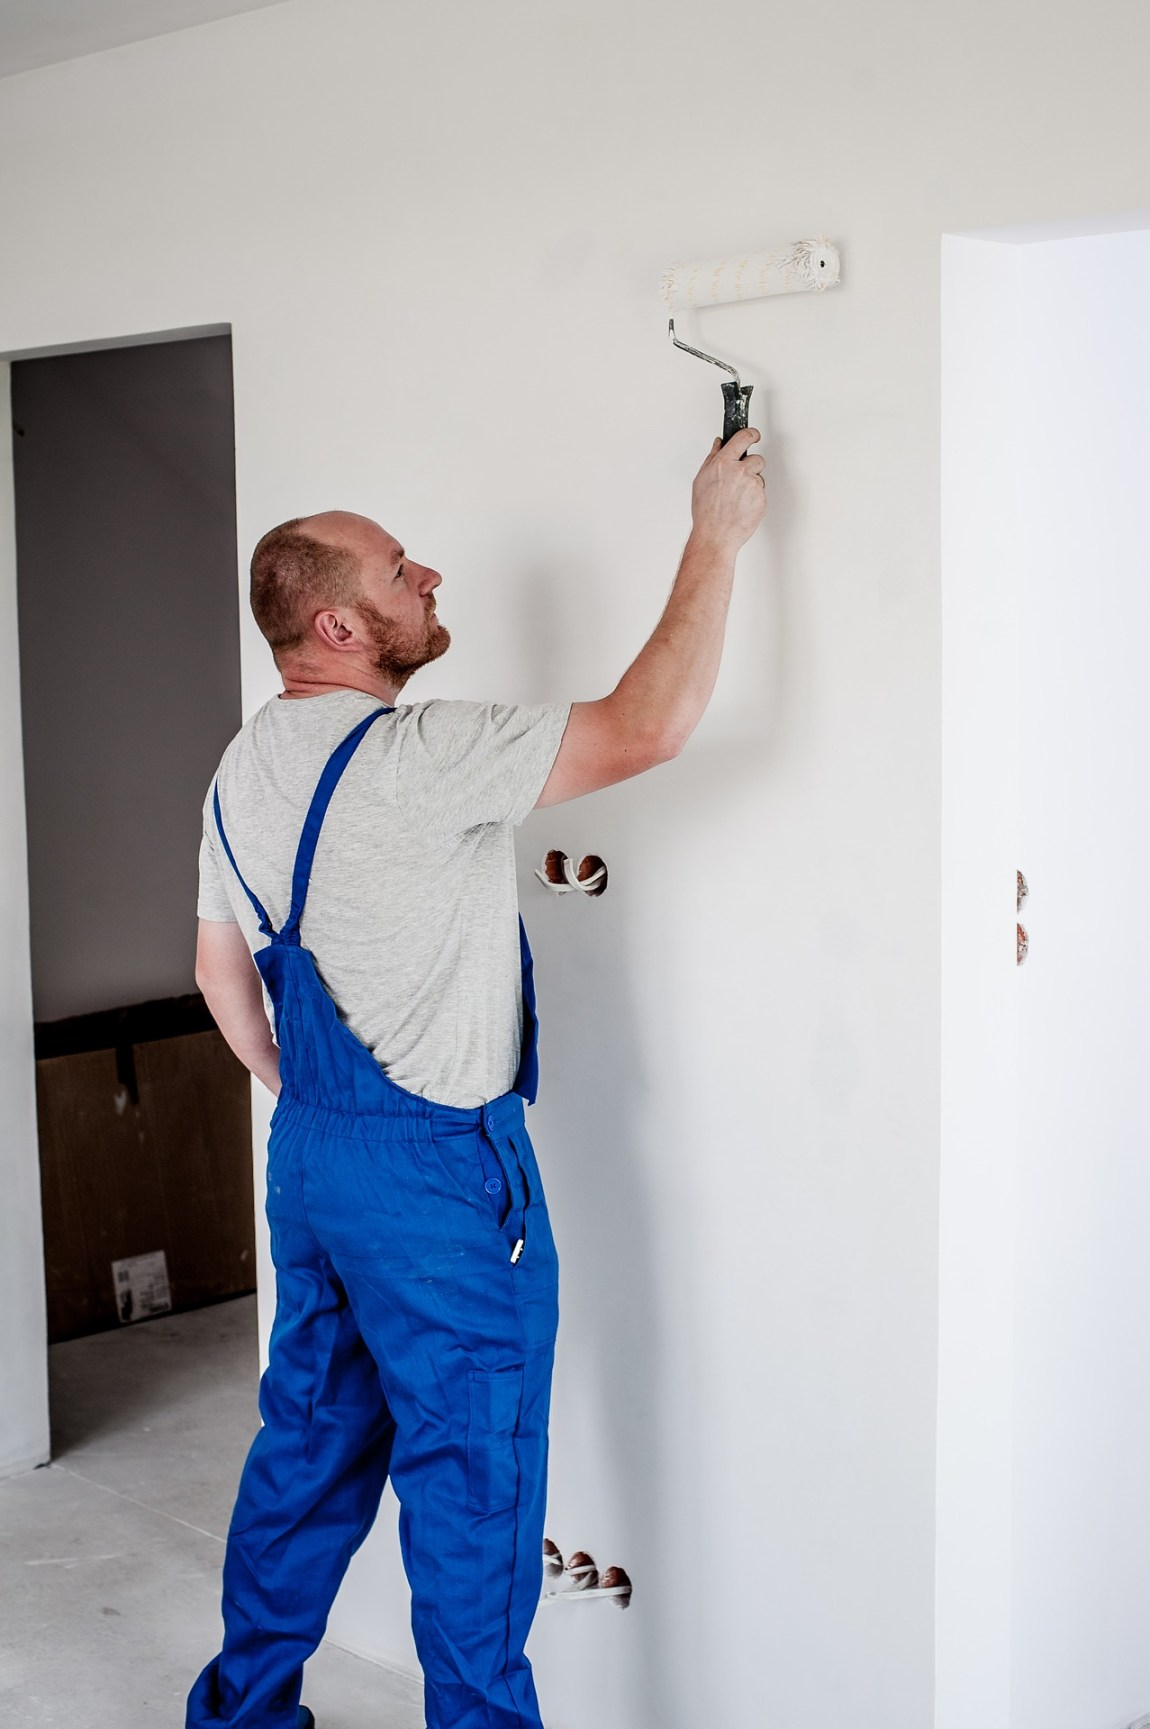 a man in blue overalls painting a wall white inside a house